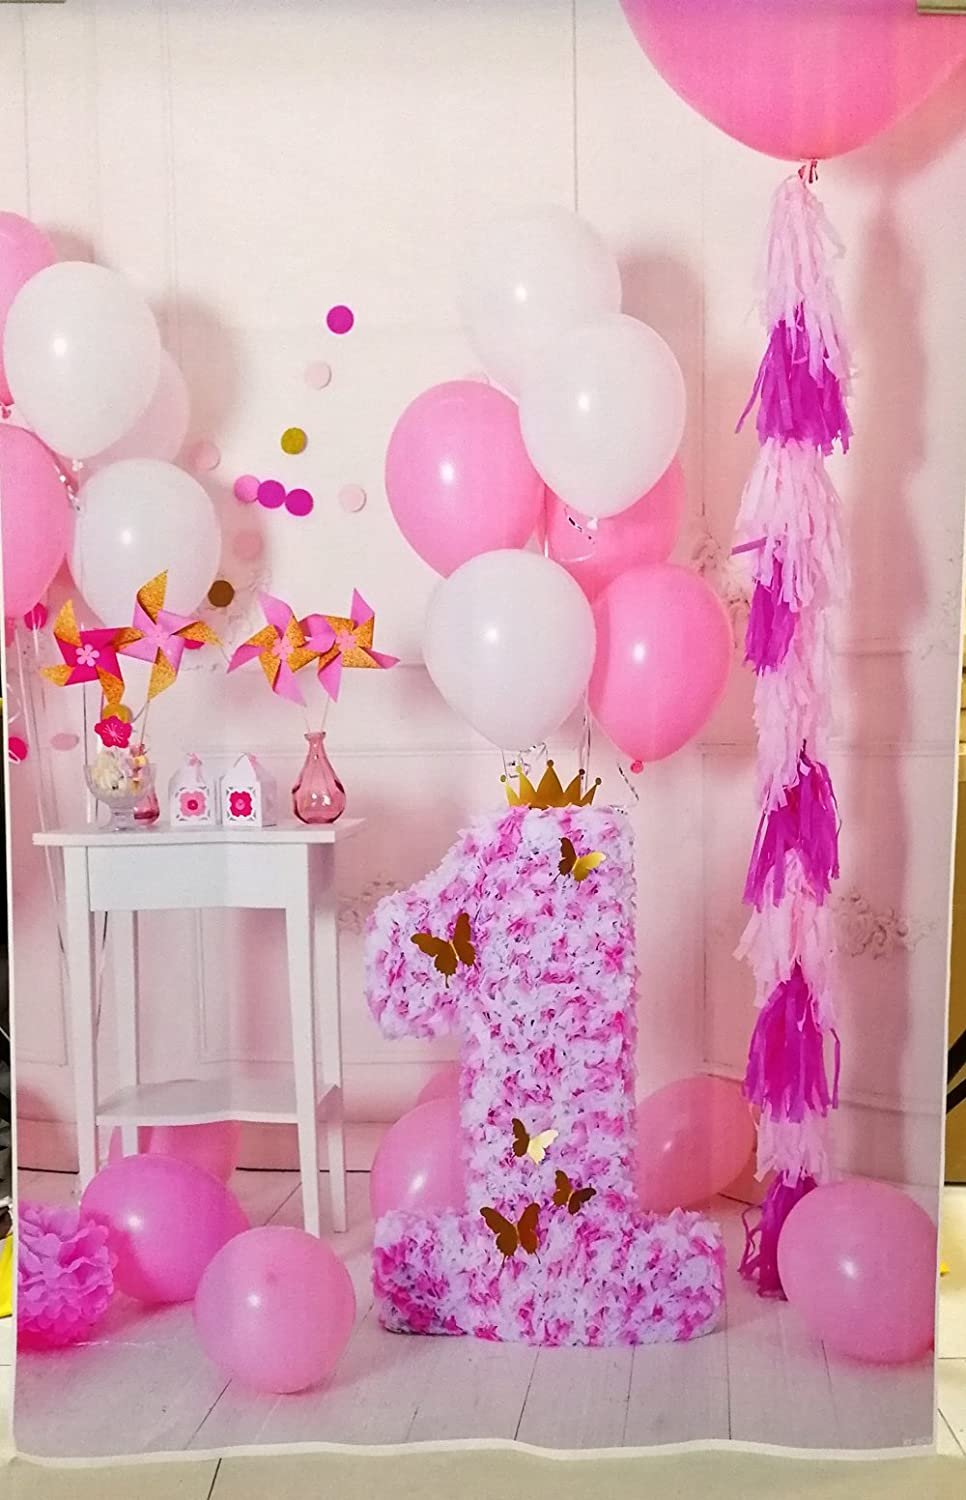 Aosto Photography Backdrops Birthday Photo Backdrop Construction Baby Shower Birthday Party Decor Banner Background Props W-631